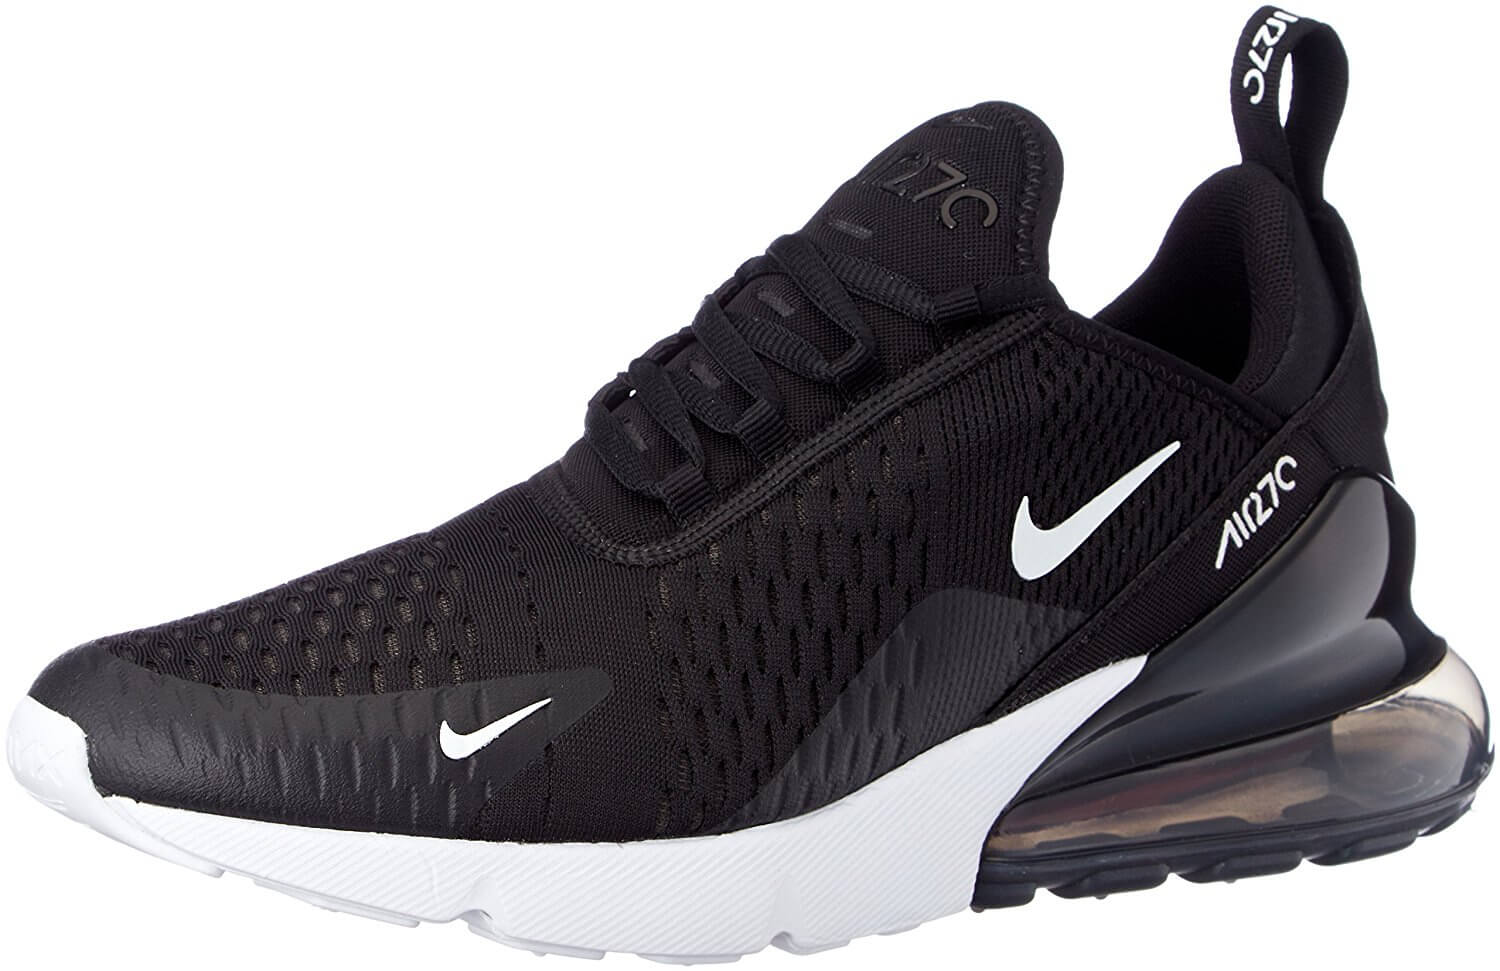 size 40 b1465 d6a59 Nike Air Max 270 Reviewed - To Buy or Not in July 2019